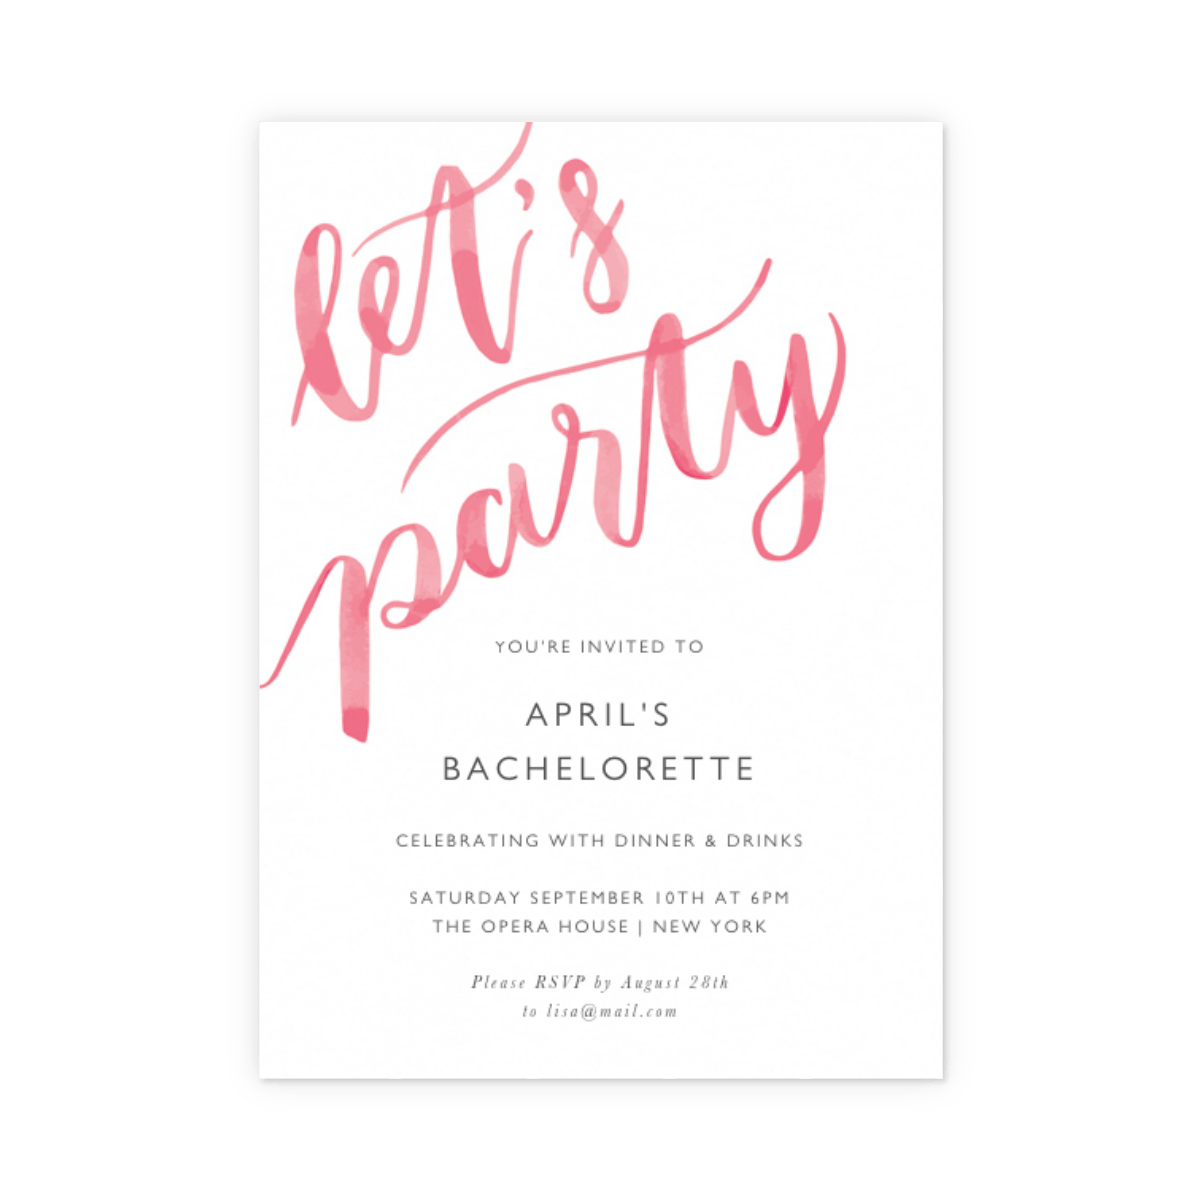 Https%3a%2f%2fwww.papier.com%2fproduct image%2f83814%2f4%2flet s party brush lettering 20259 front 1565550404.png?ixlib=rb 1.1